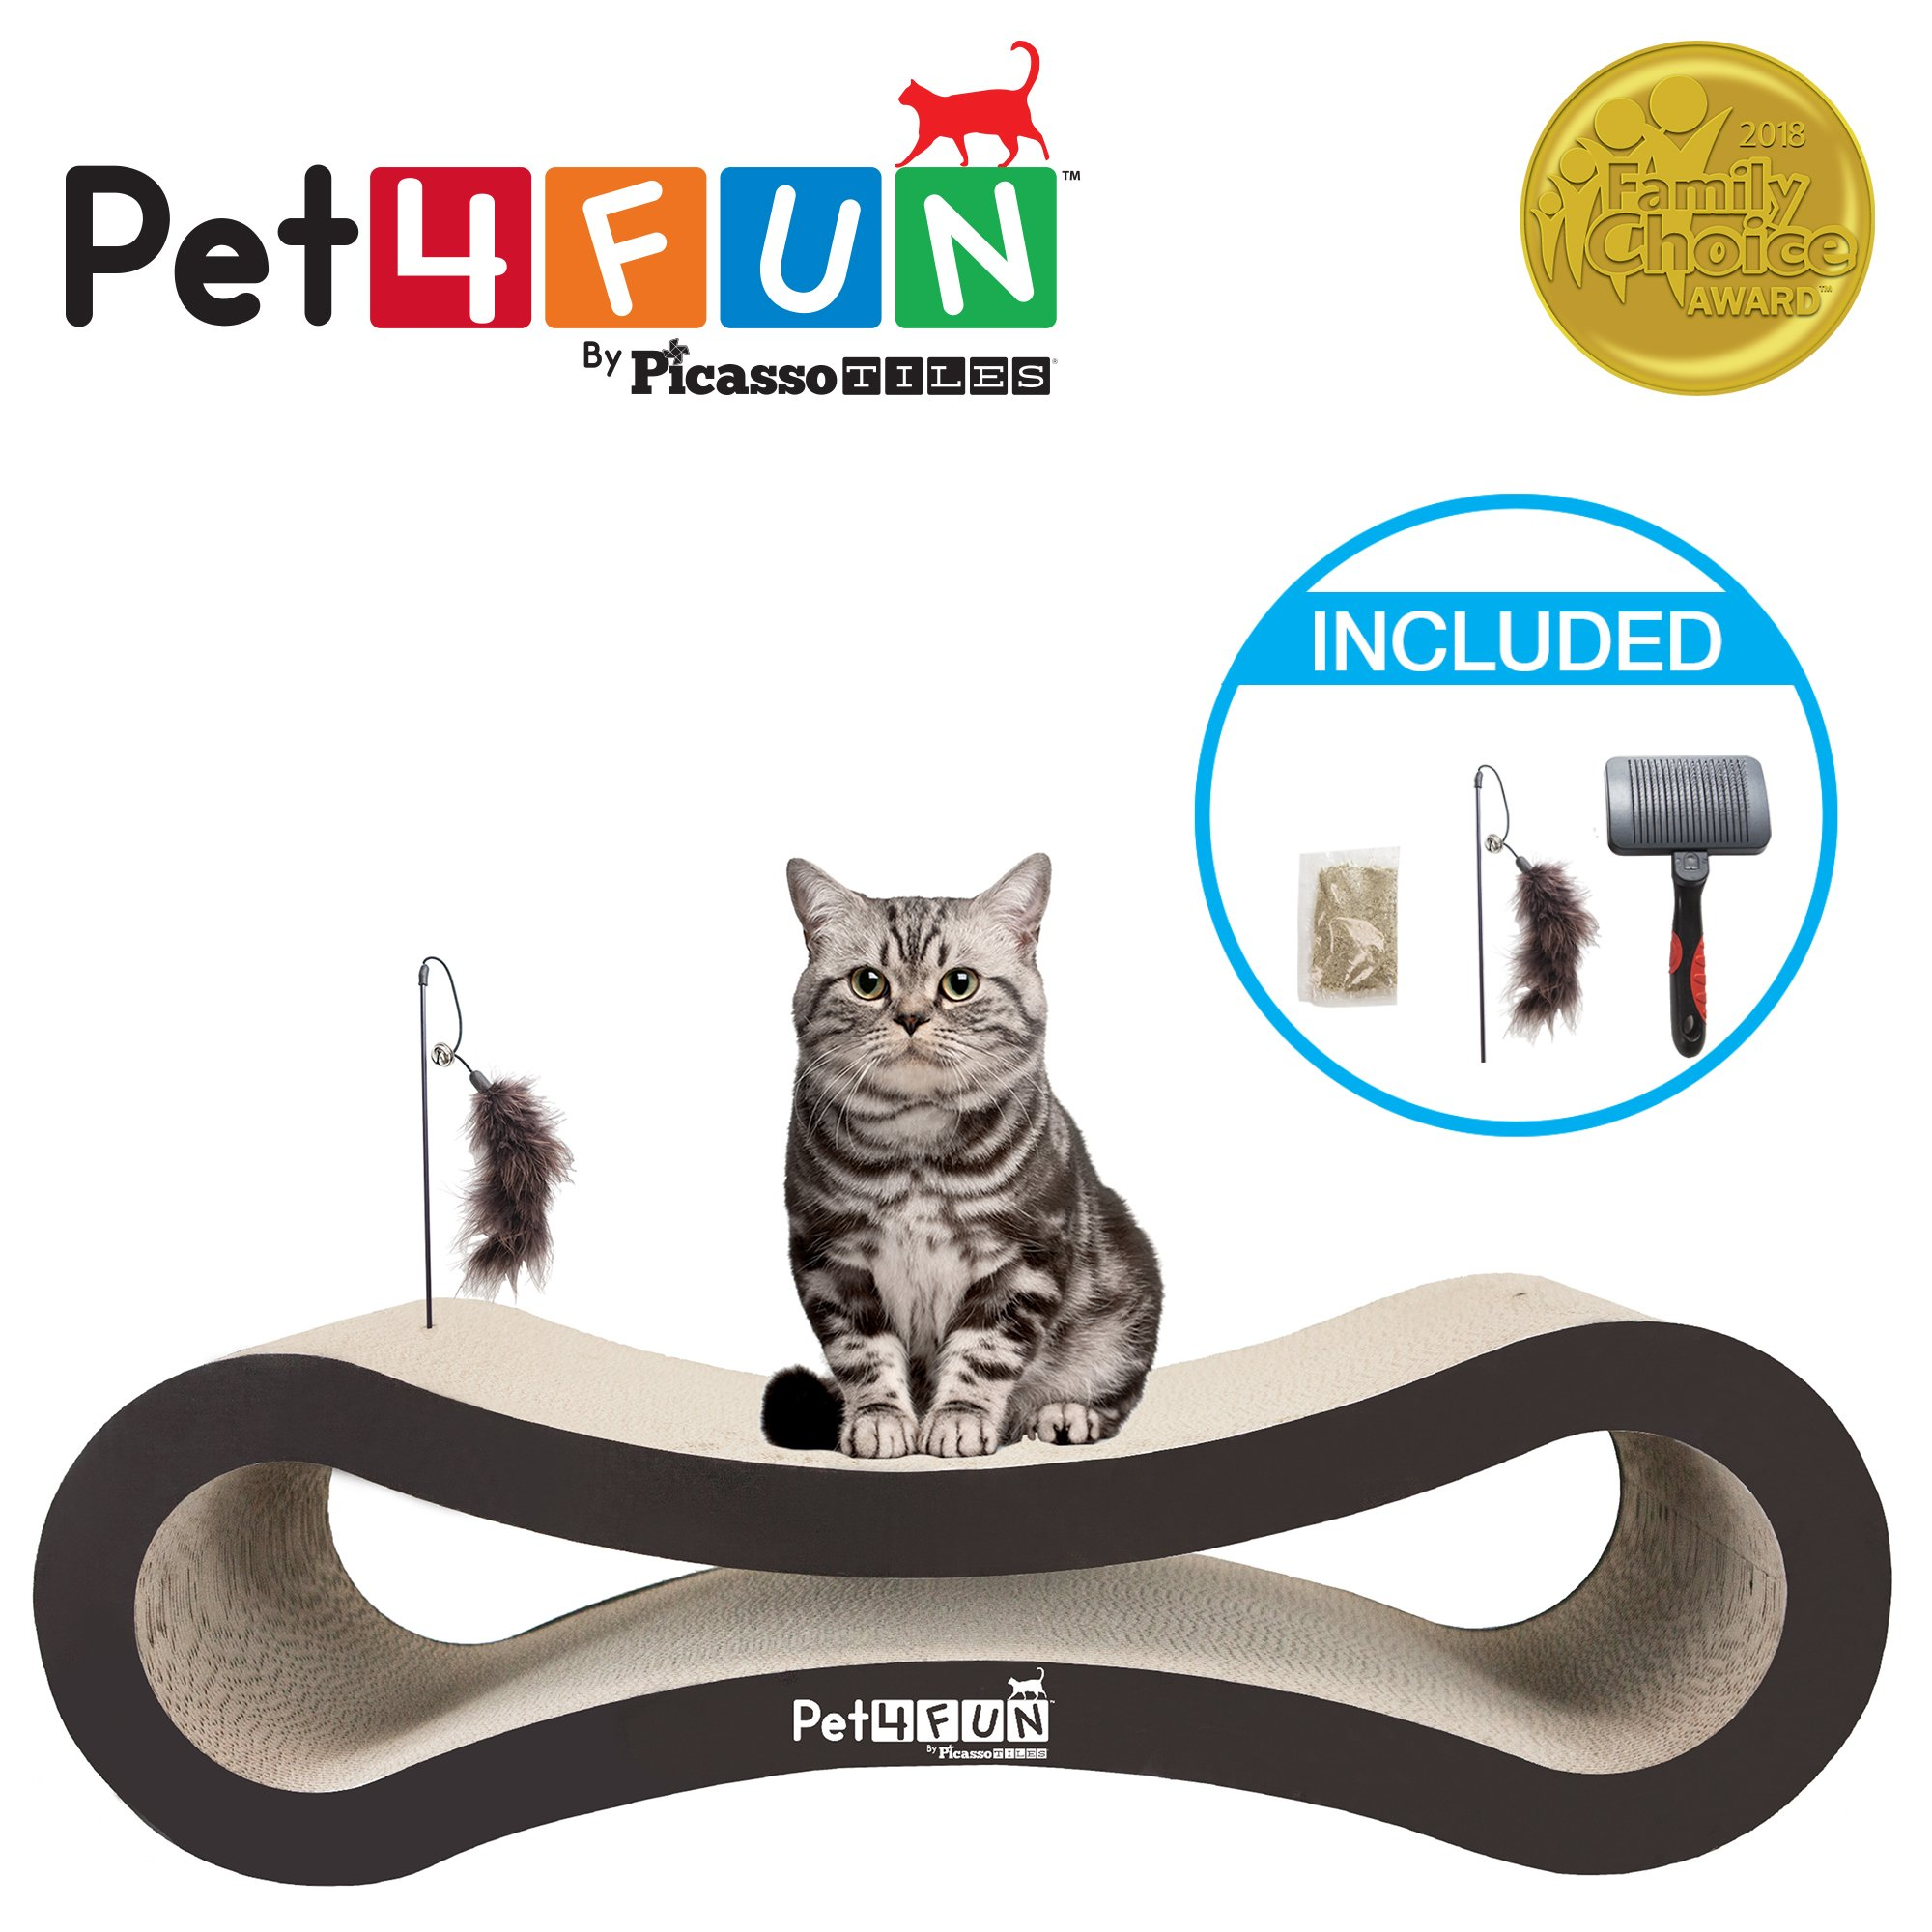 Pet4Fun® PF360 4 in1 Reversible Durable Stylish Cat Scratcher Lounge w/ large space and special teaser holder for scratching, playing, resting, and napping. Teaser, Comb, & Catnip Included by Picasso Tiles